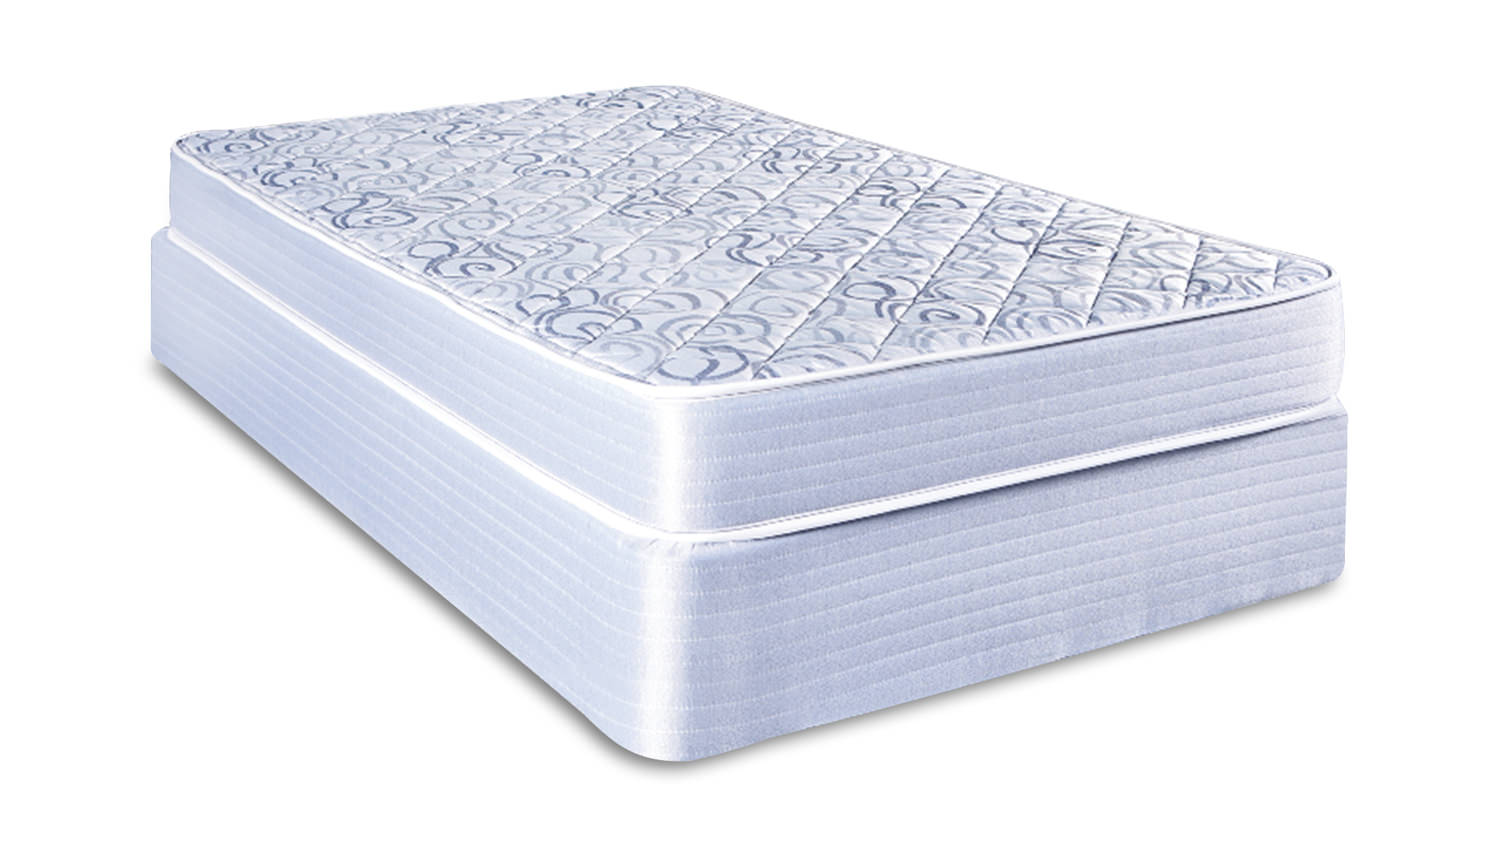 Total Comfort Renard Mattress Set By Total Comfort Dock86